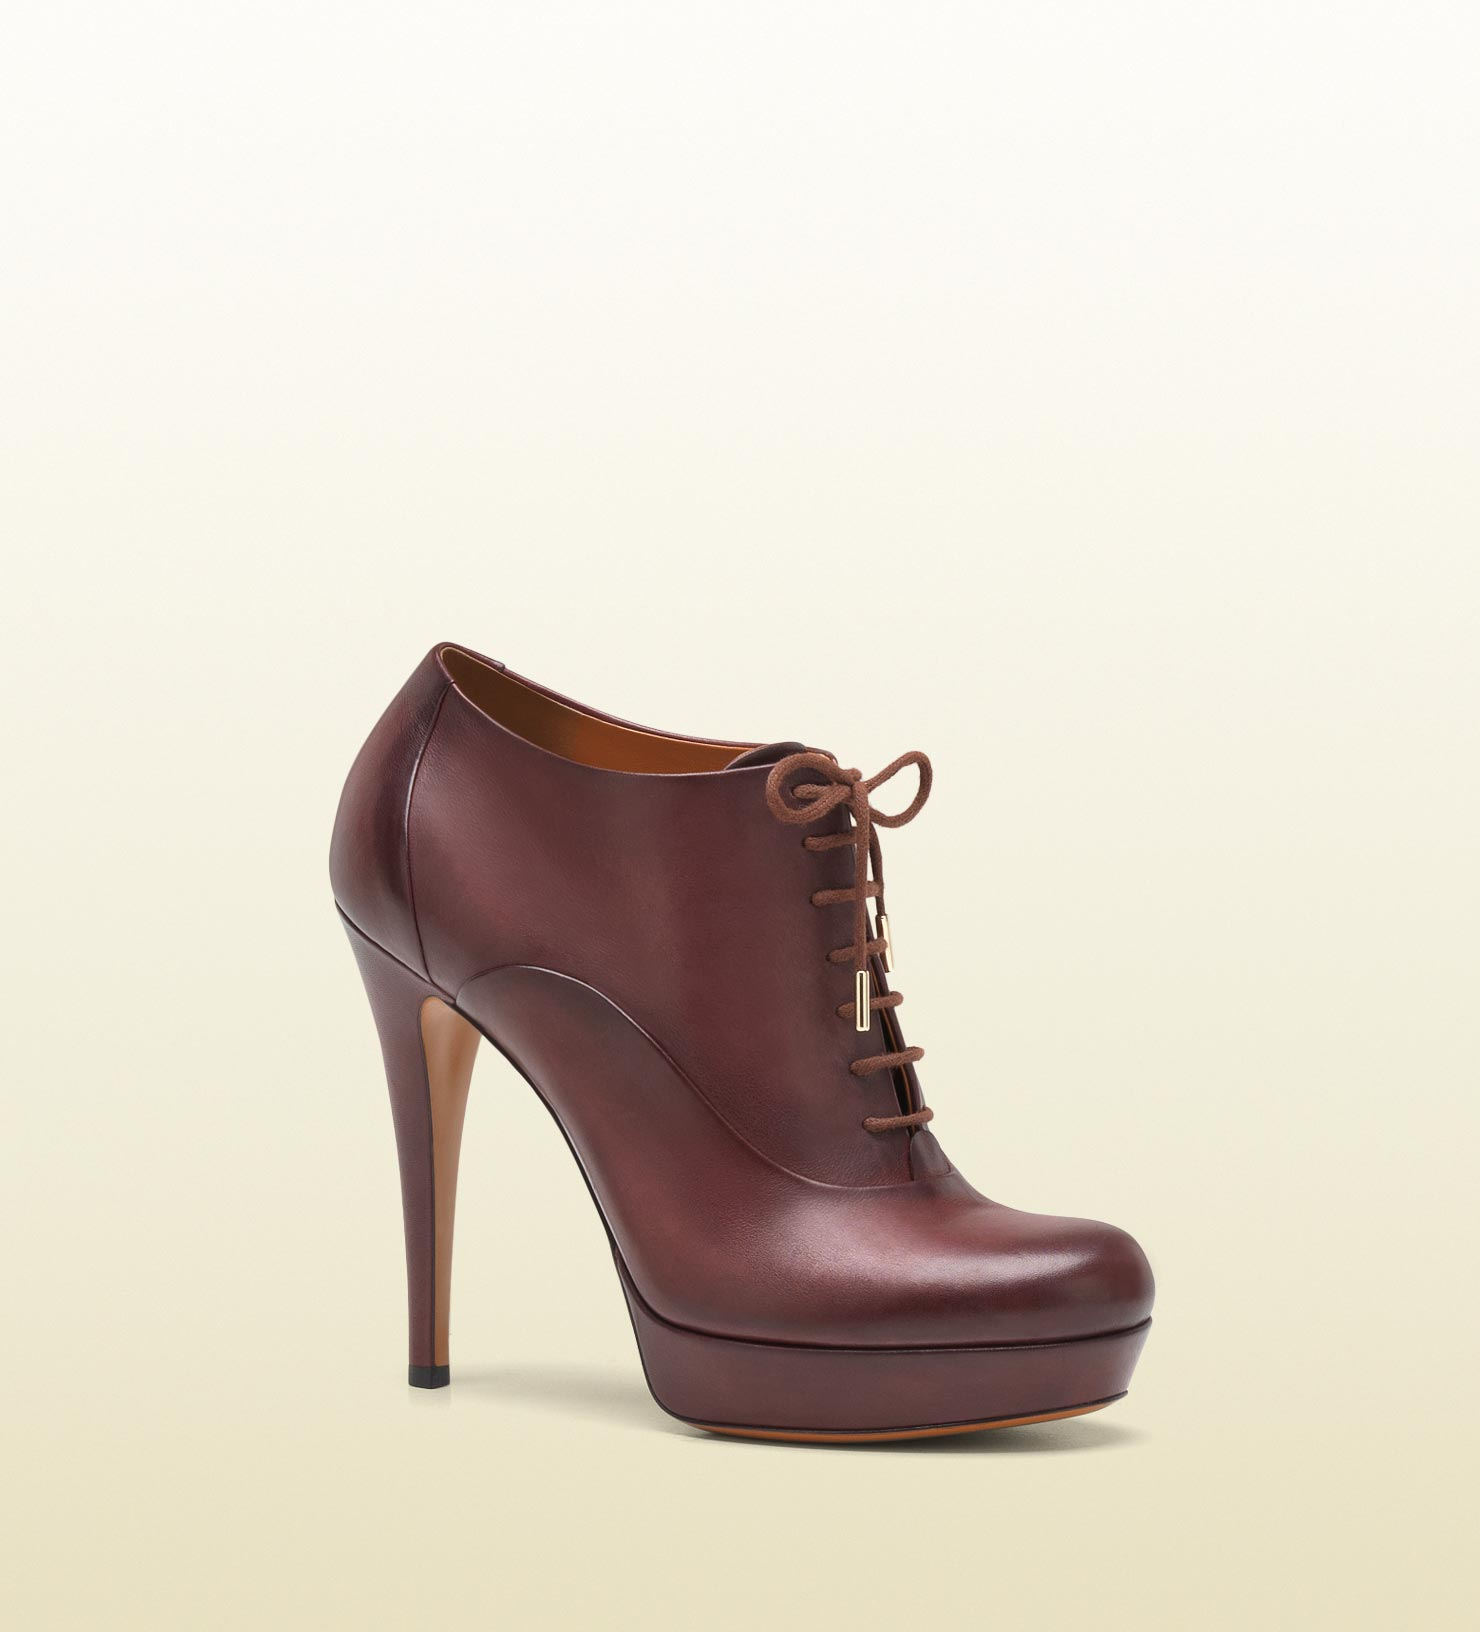 gucci betty laceup high heel platform bootie in brown bordeaux lyst. Black Bedroom Furniture Sets. Home Design Ideas